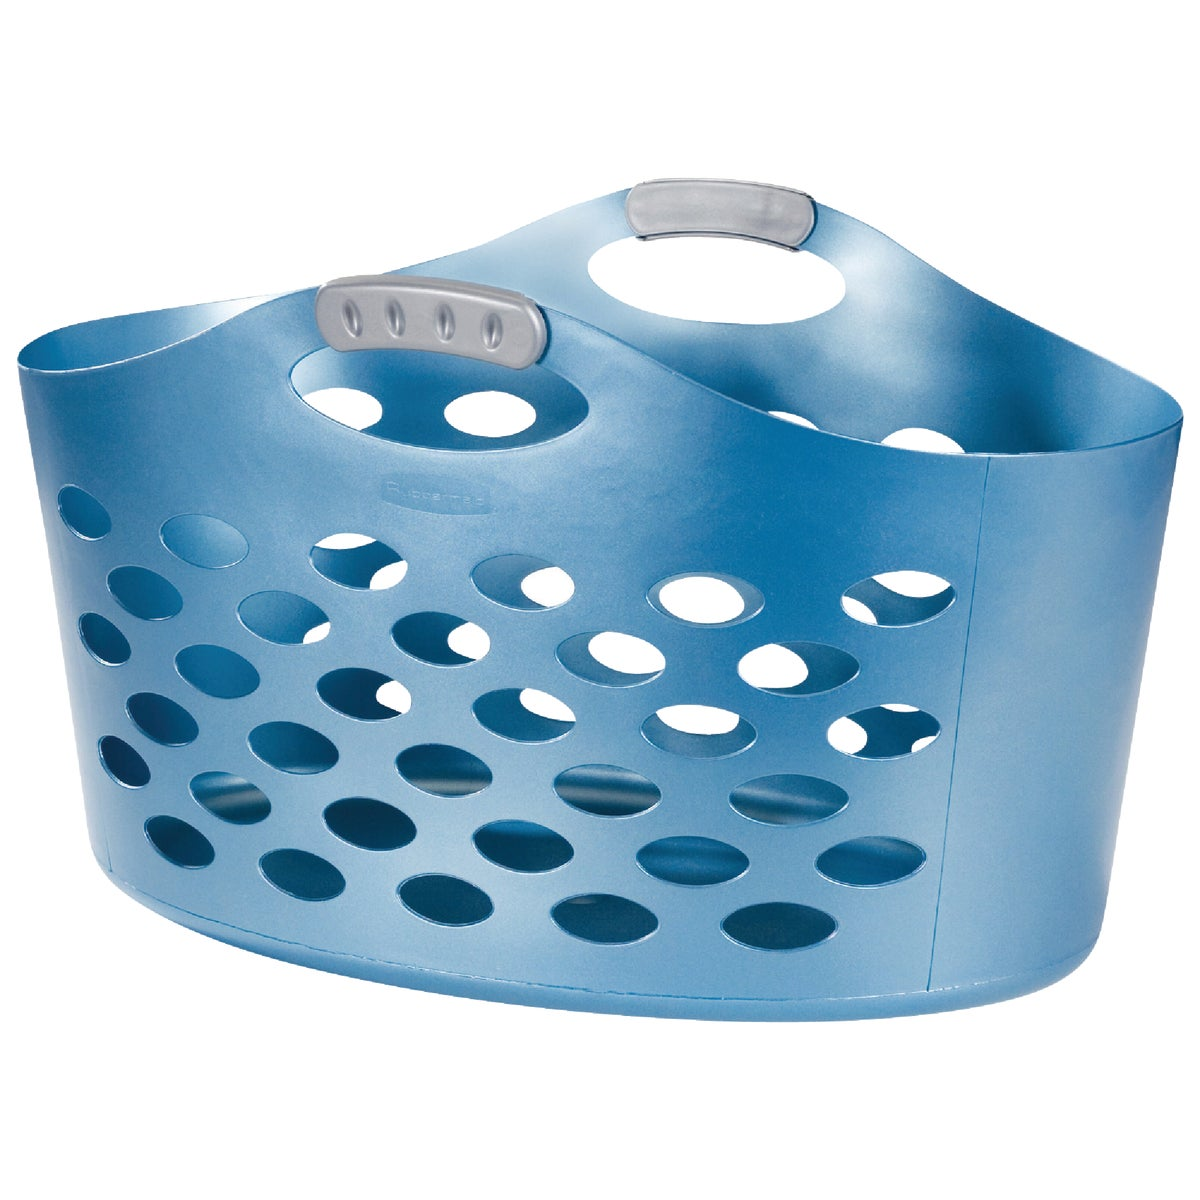 BLUE FLEXNCARRY BASKET - FG260100ROYBL by Rubbermaid Home